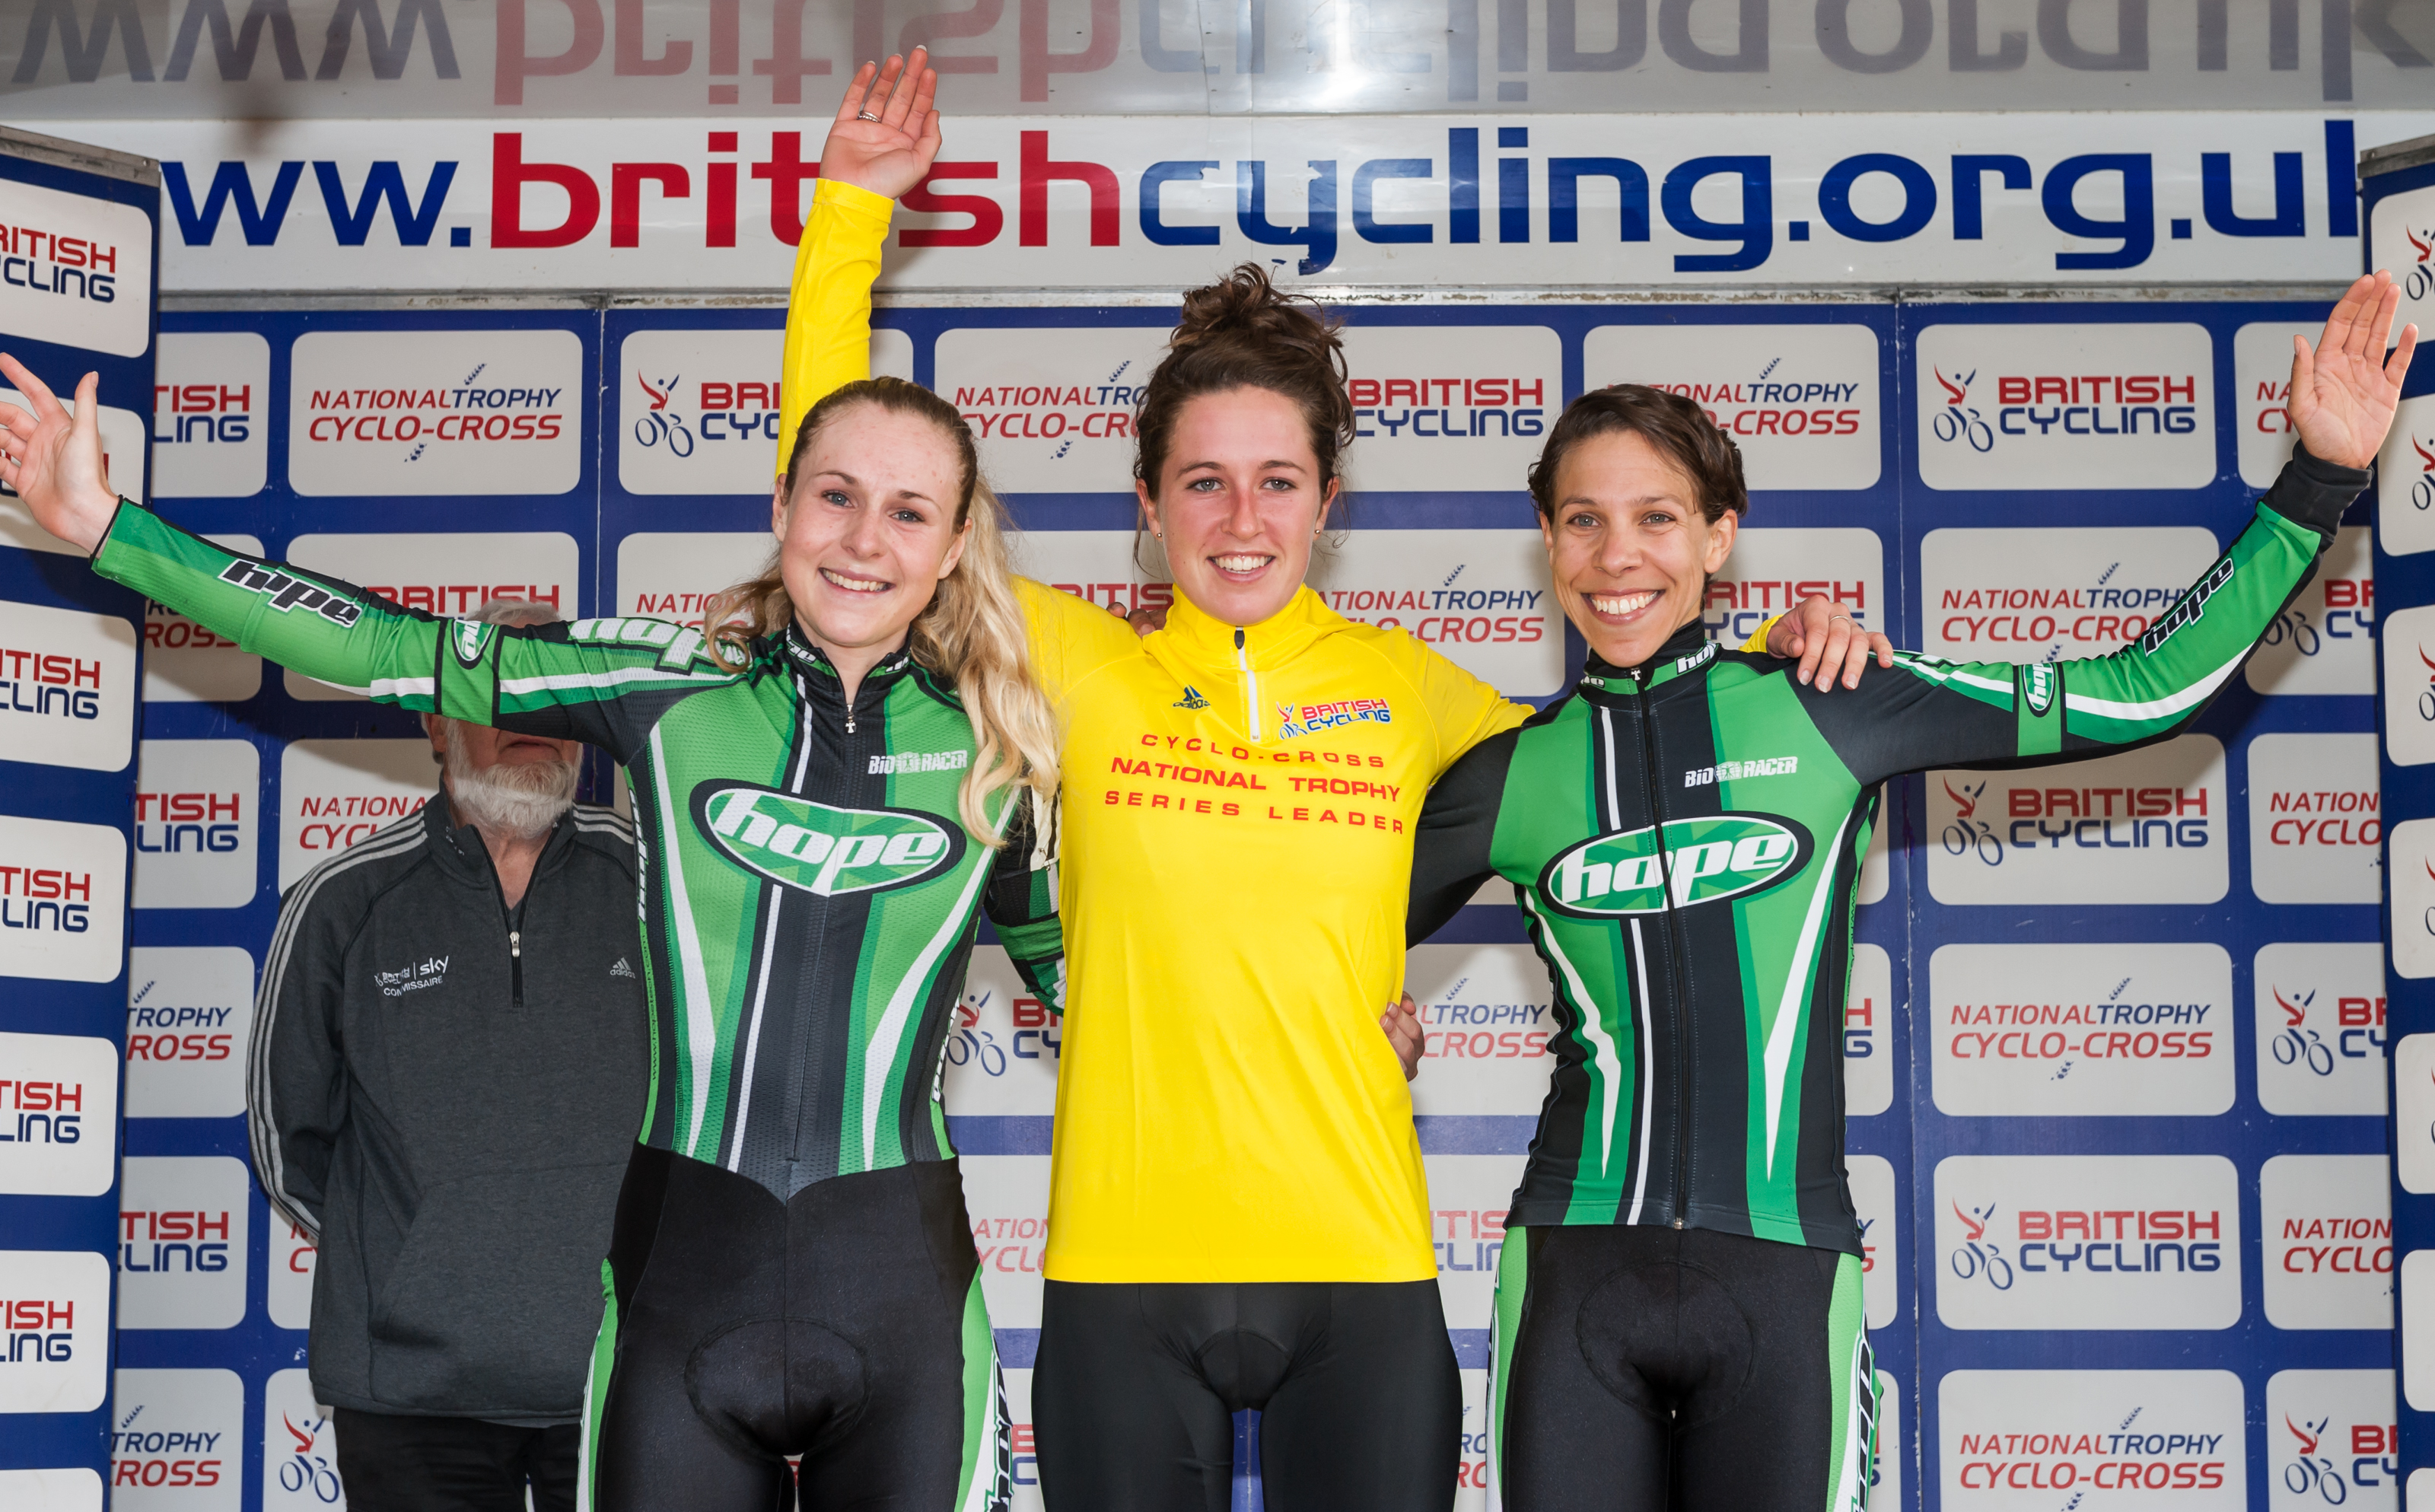 2015 NATIONAL TROPHY RND 1 SOUTHAMPTON ELITE WOMEN